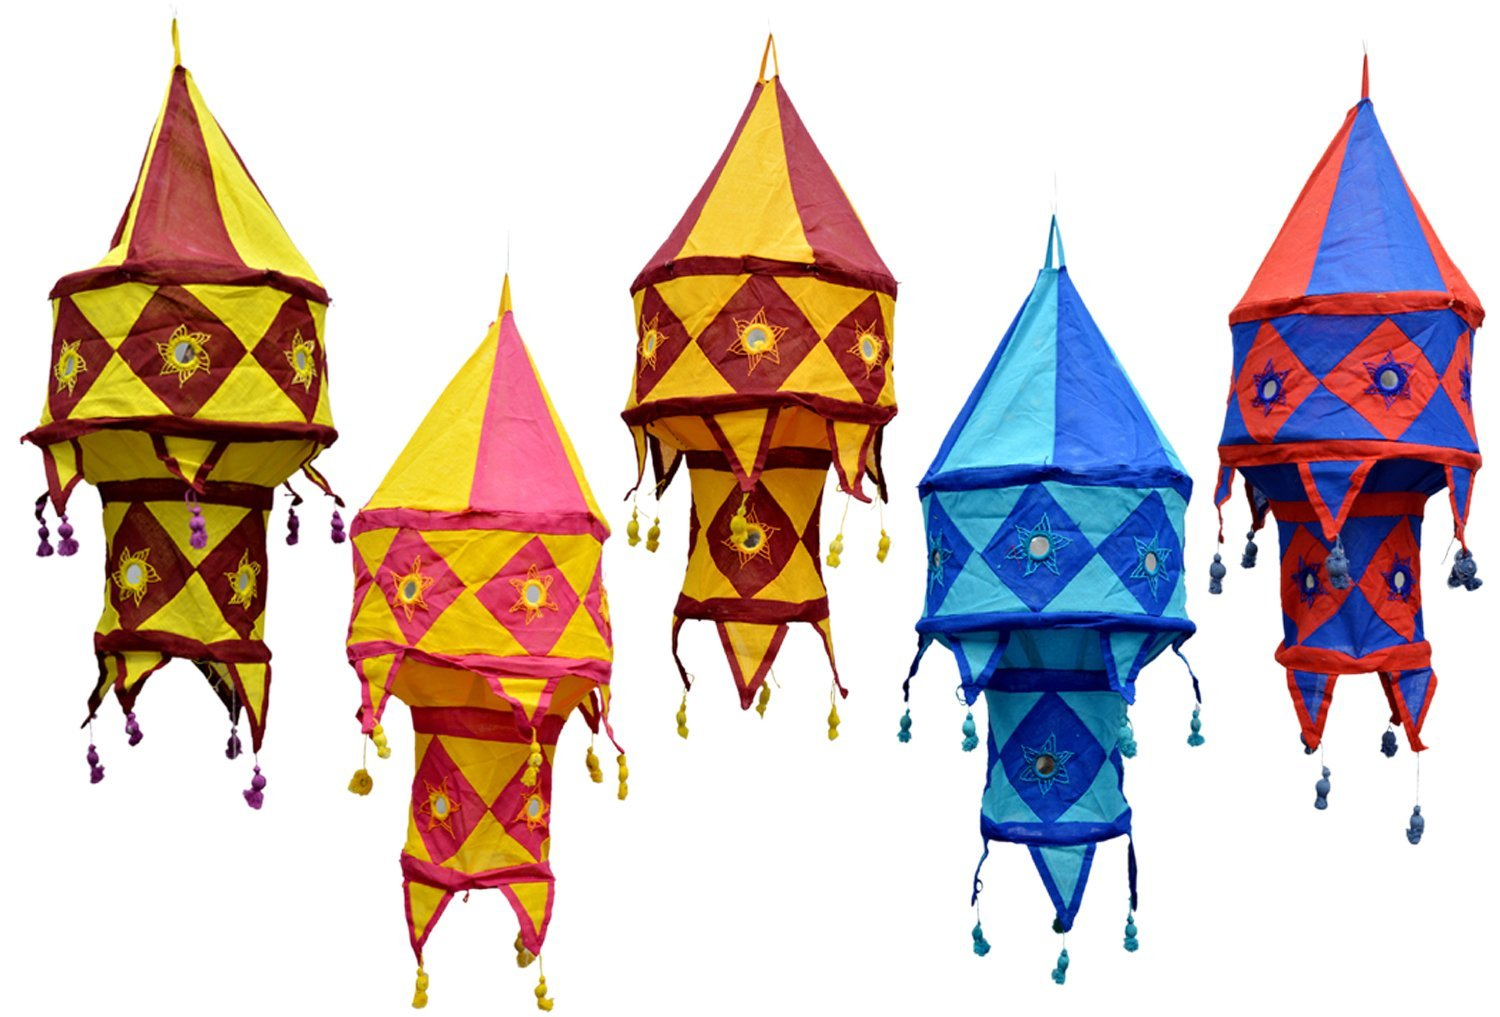 5pcs-25pcs Indian Traditional Hanging Lamps shades Patchwork Mirror Work Home Decor 2 Layer